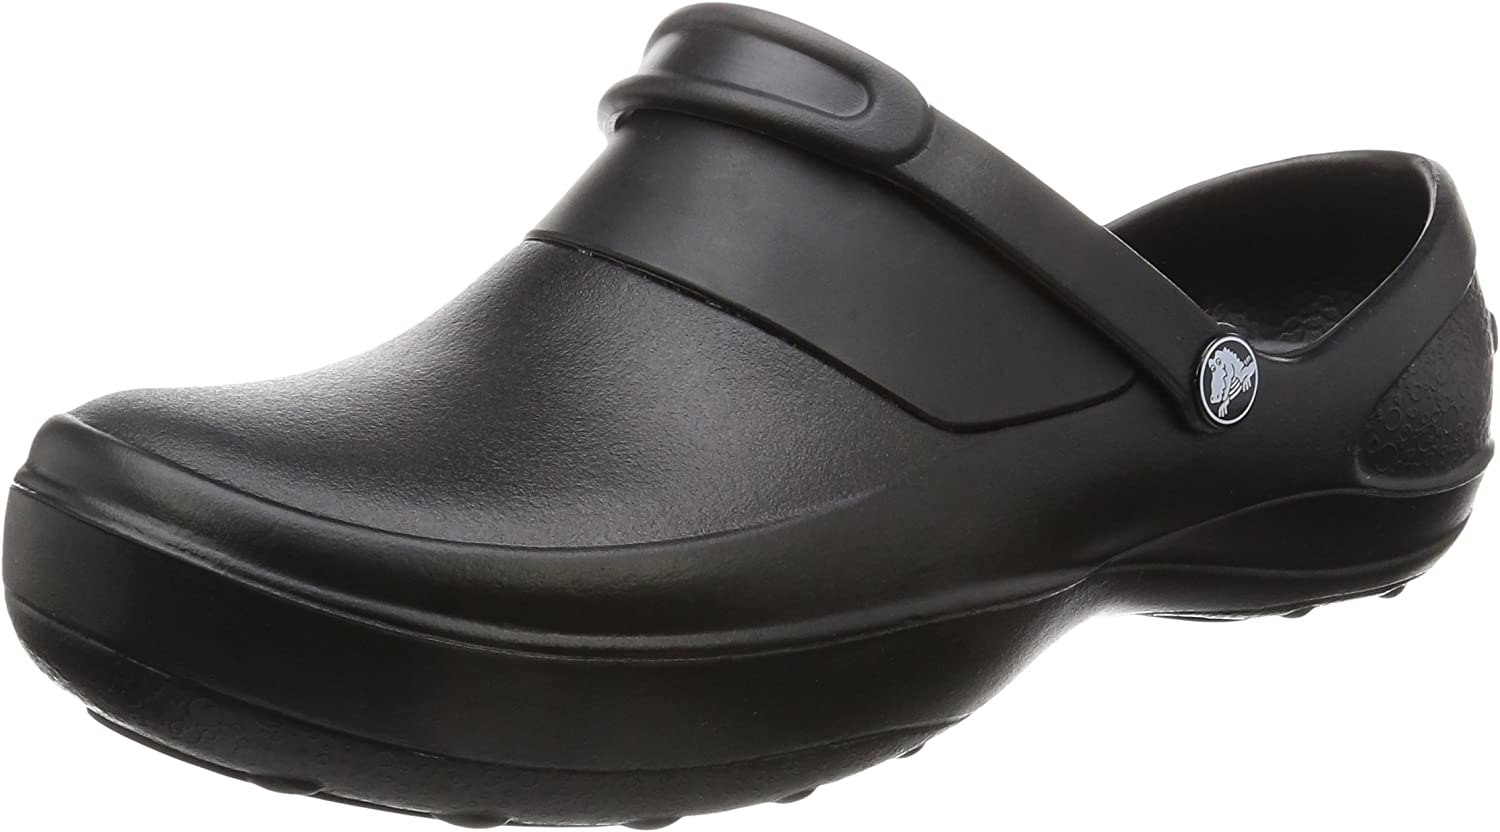 Crocs Women's Mercy Work Clog | Work Shoes, Nurse Shoes, Chef Shoes